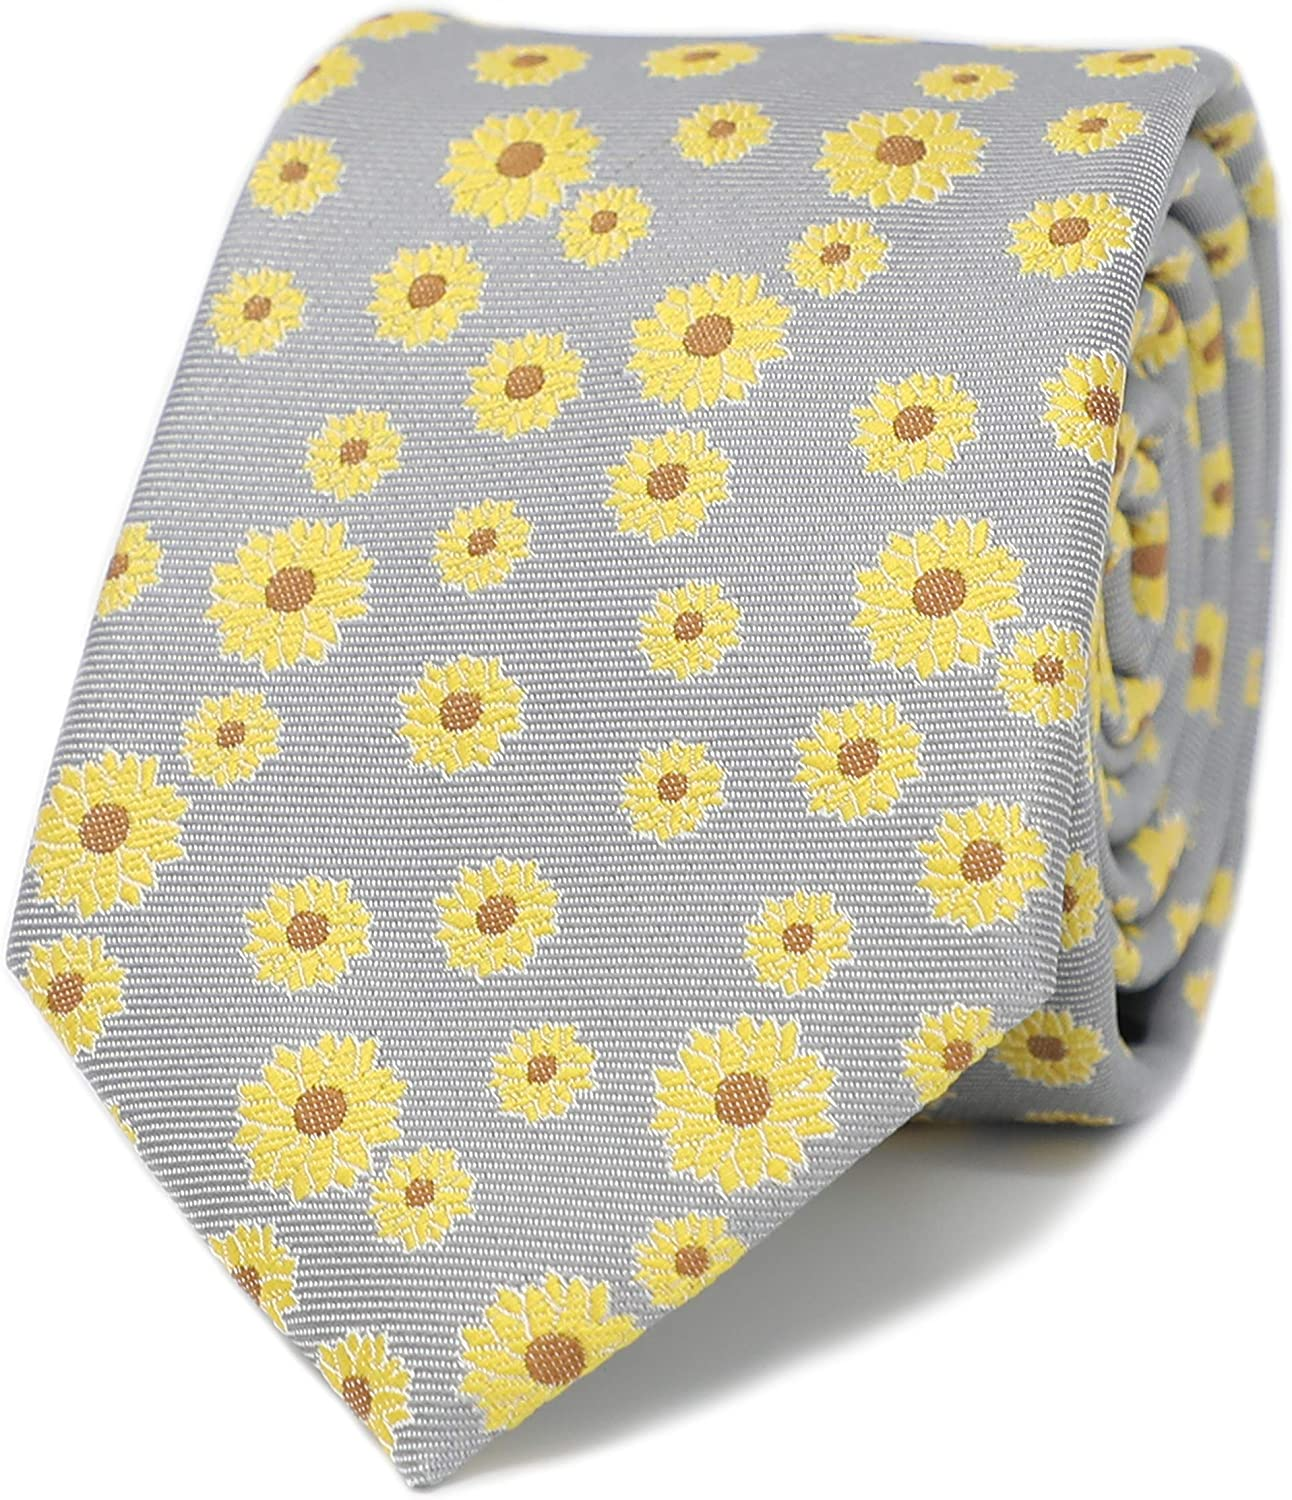 MENDEPOT Sunflower Pattern Men Necktie With Gift Box Yellow Flowers Gray Tie Father's Day Birthday Gift Neck Tie